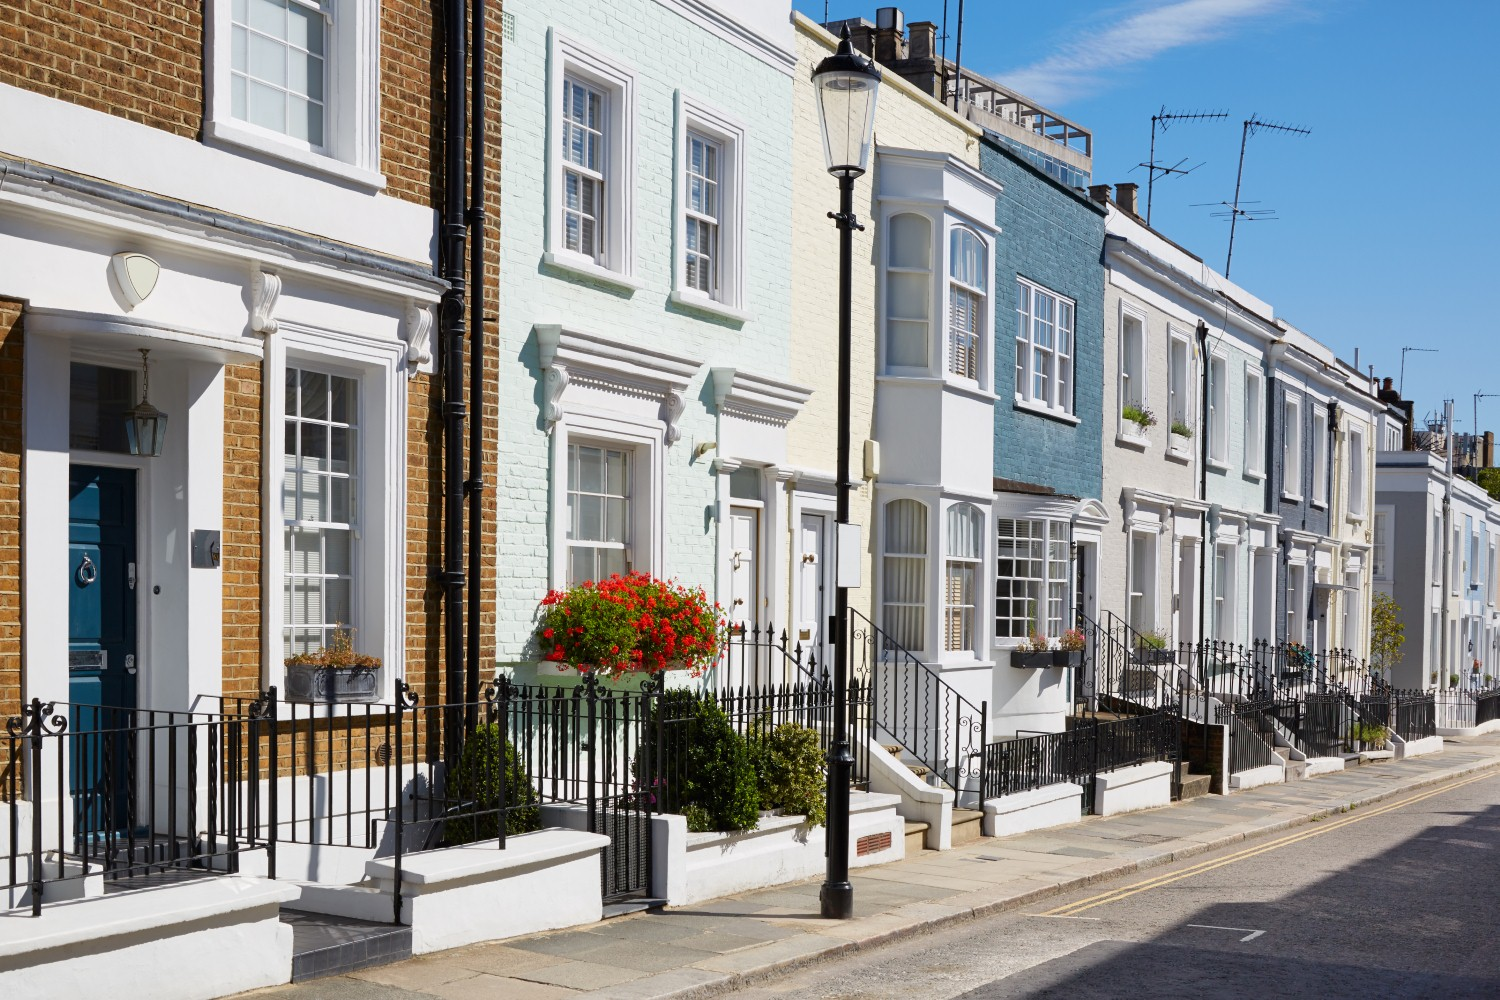 Prices in prime central London reached new high in 2016 [Image: AndreaAstes via iStock]